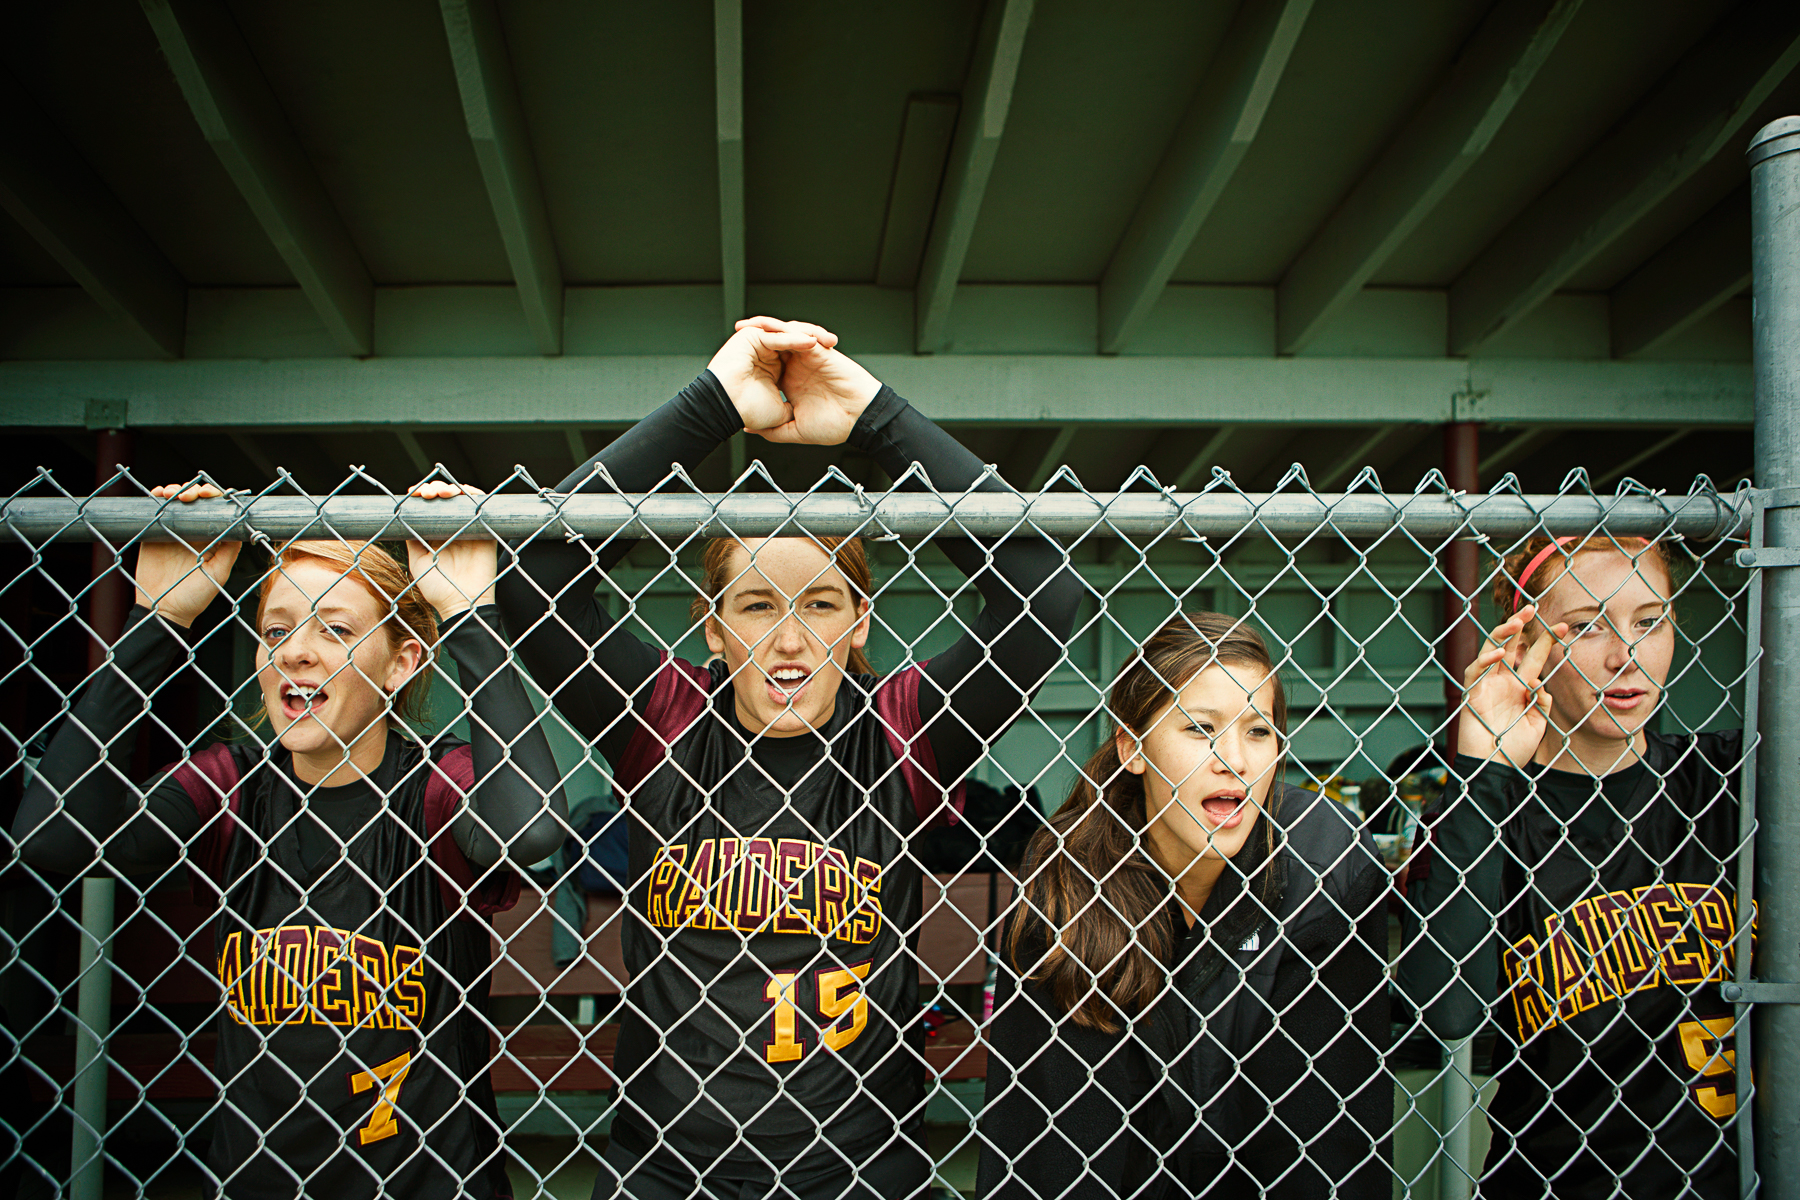 0335_JH_Port_corvallis_softball_0361_w4_green_RGB_